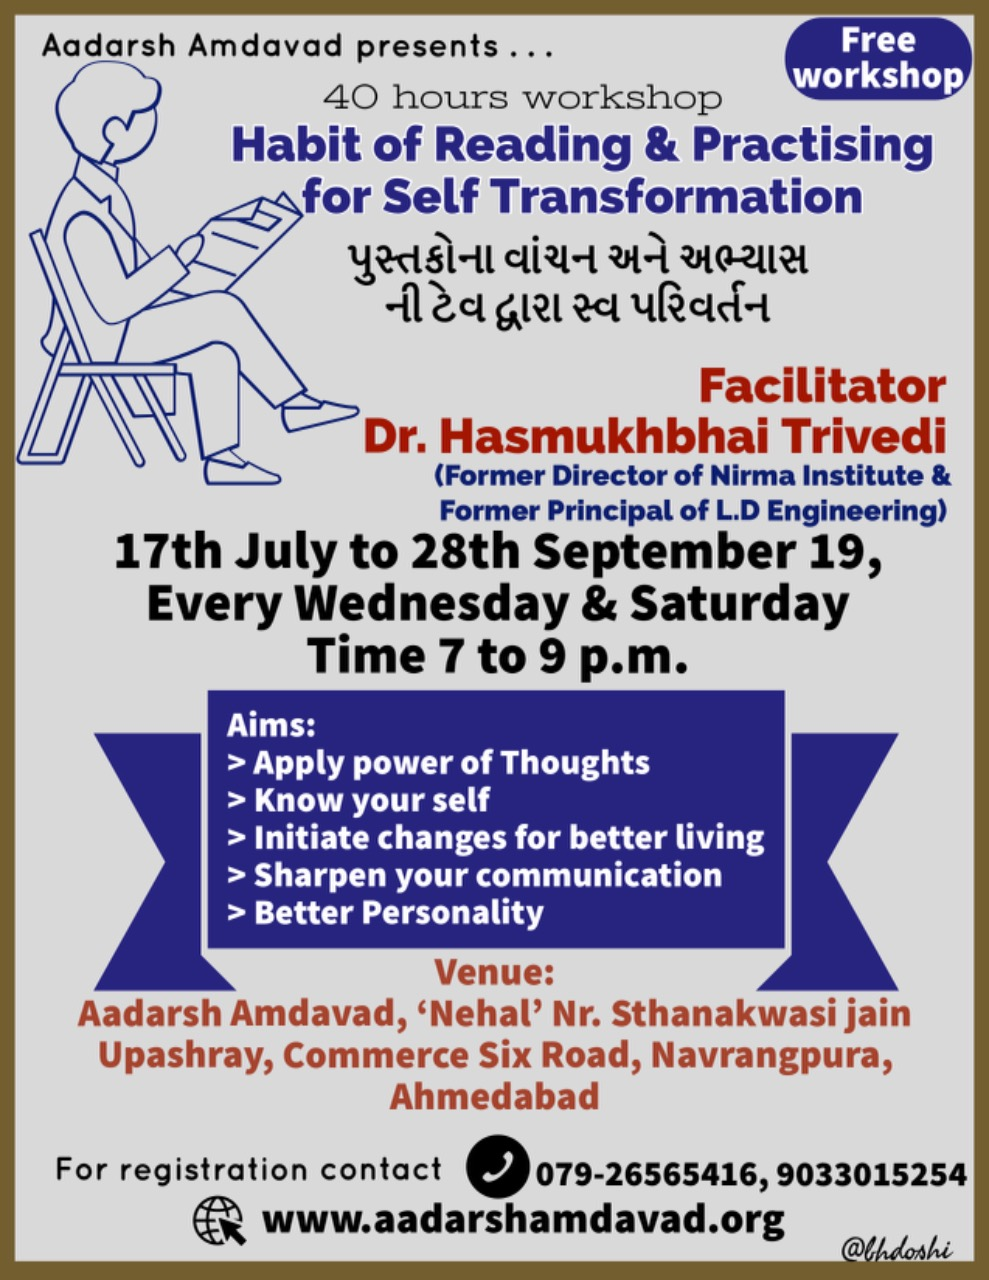 https://creativeyatra.com/wp-content/uploads/2019/07/Habit-of-Reading-Practicing-For-Self-Transformation.jpg